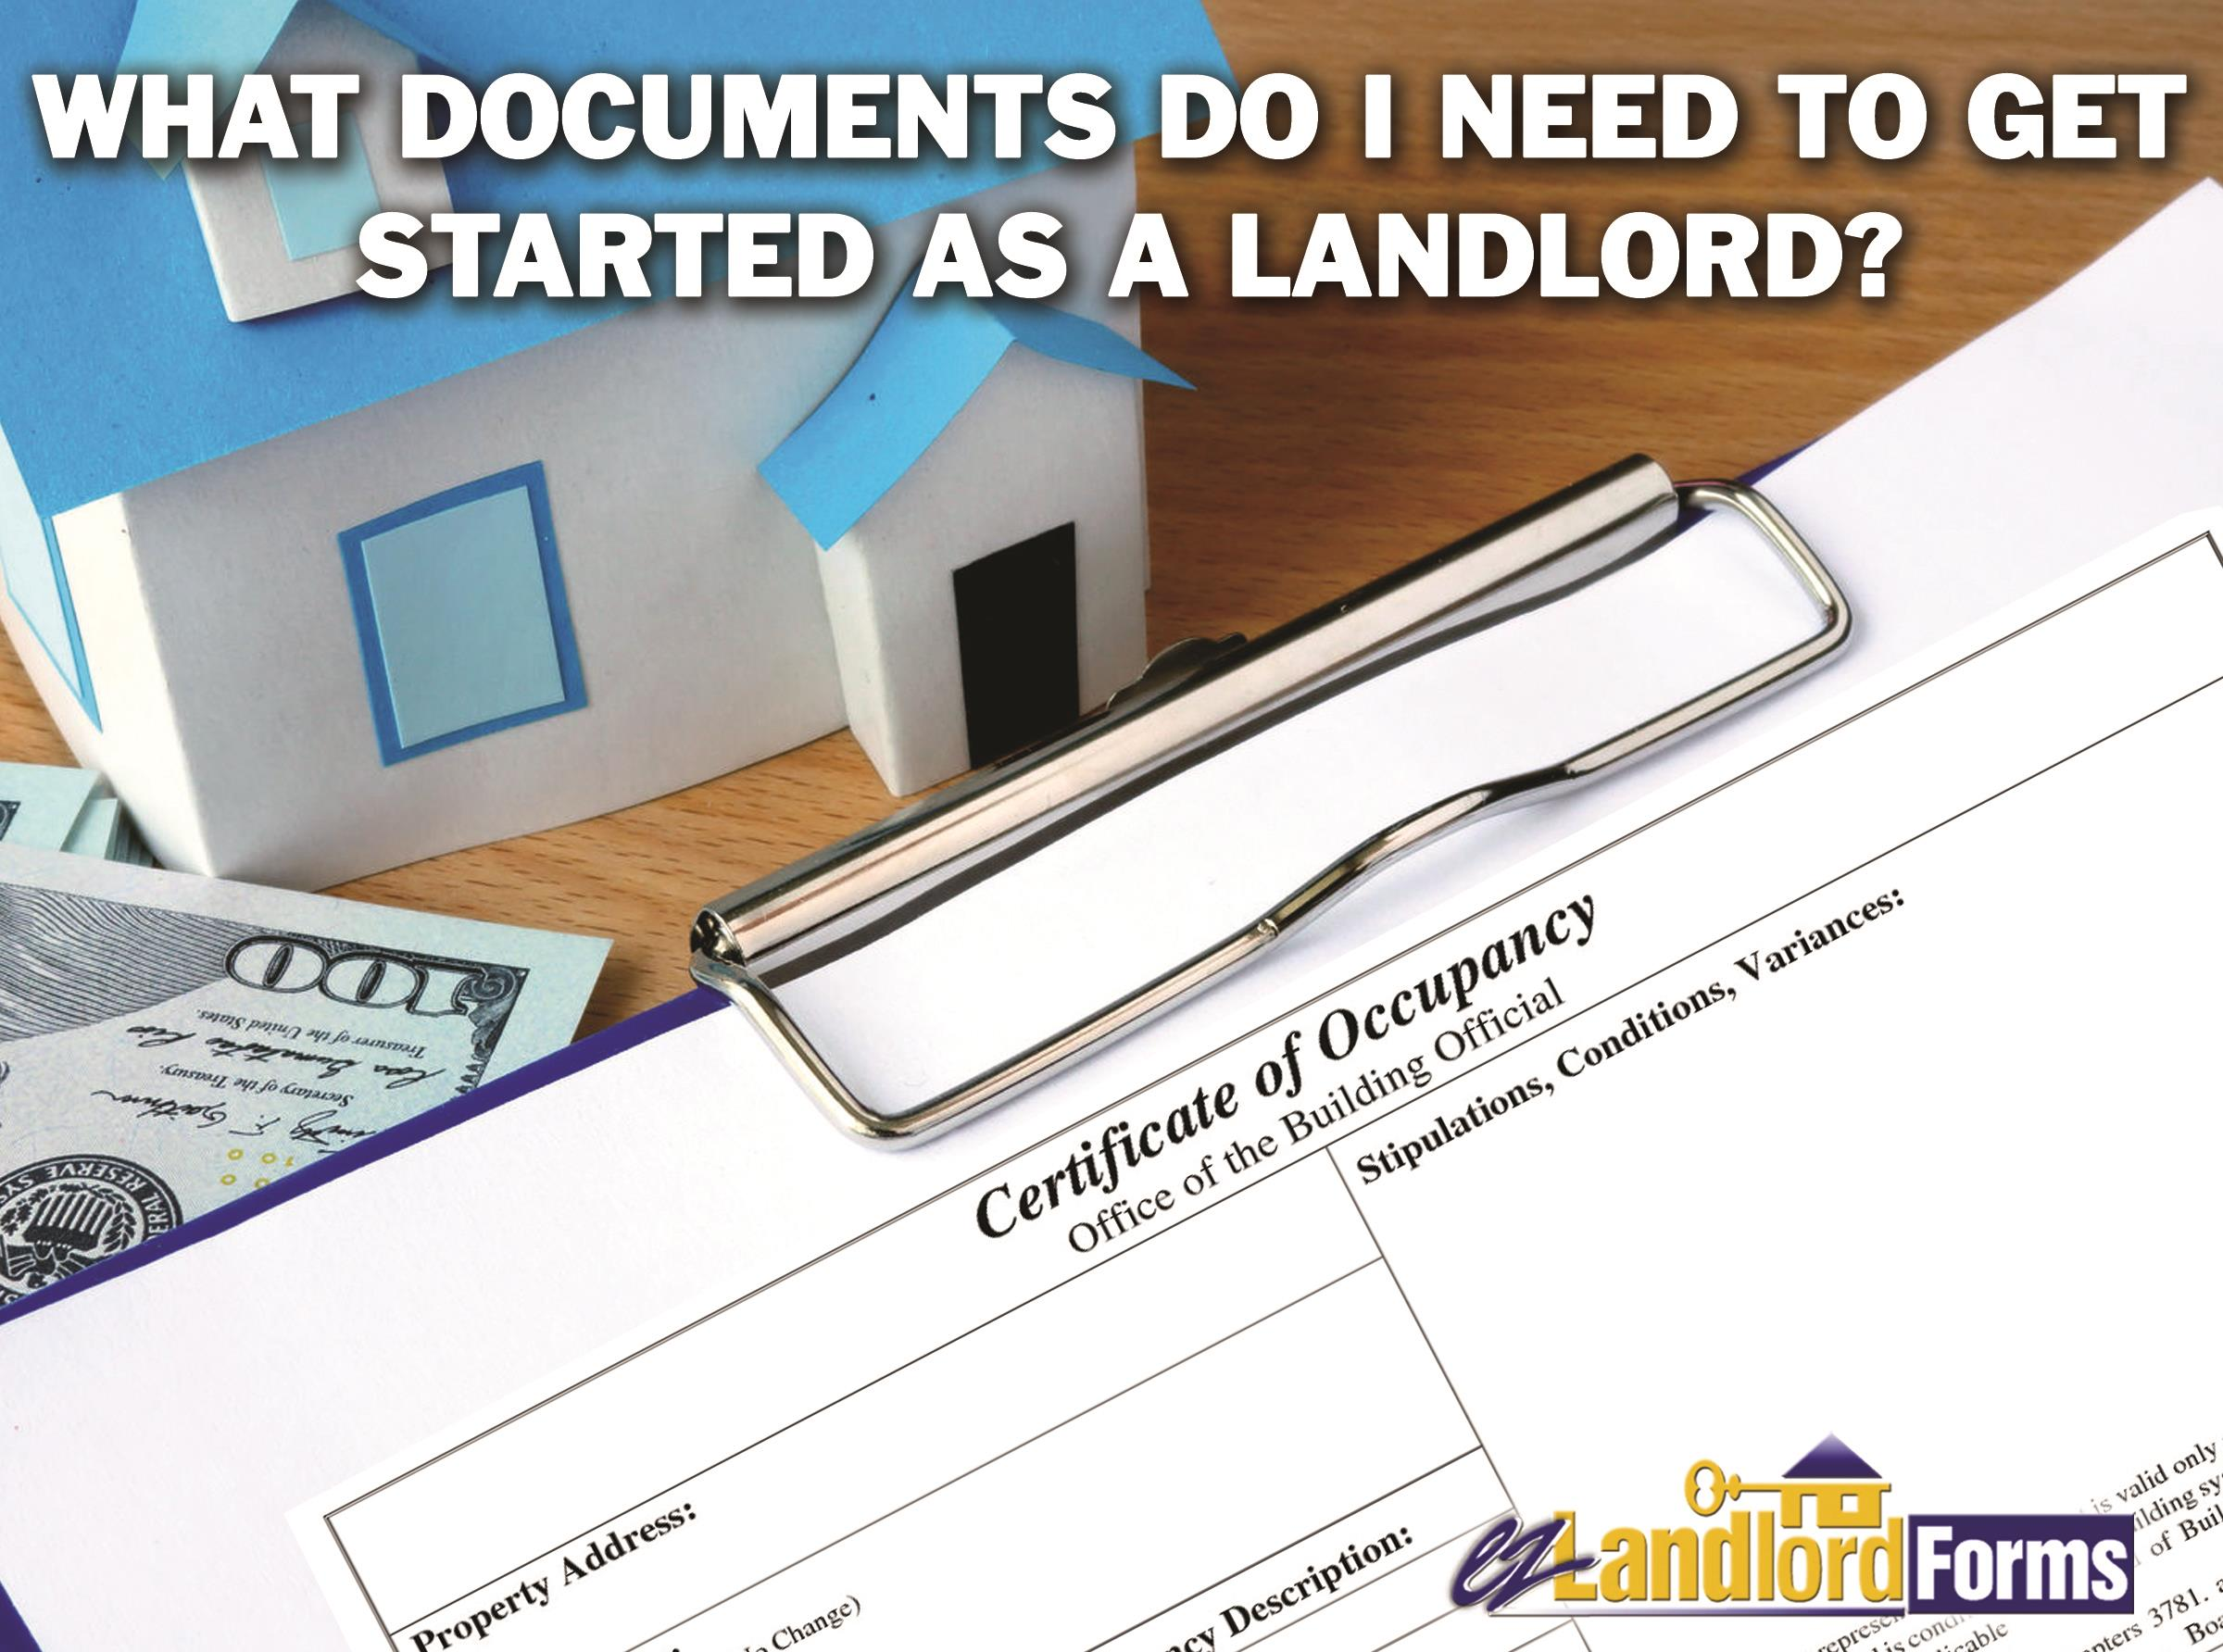 What_documents_do_I_need_to_get_started_as_a_landlord_V4